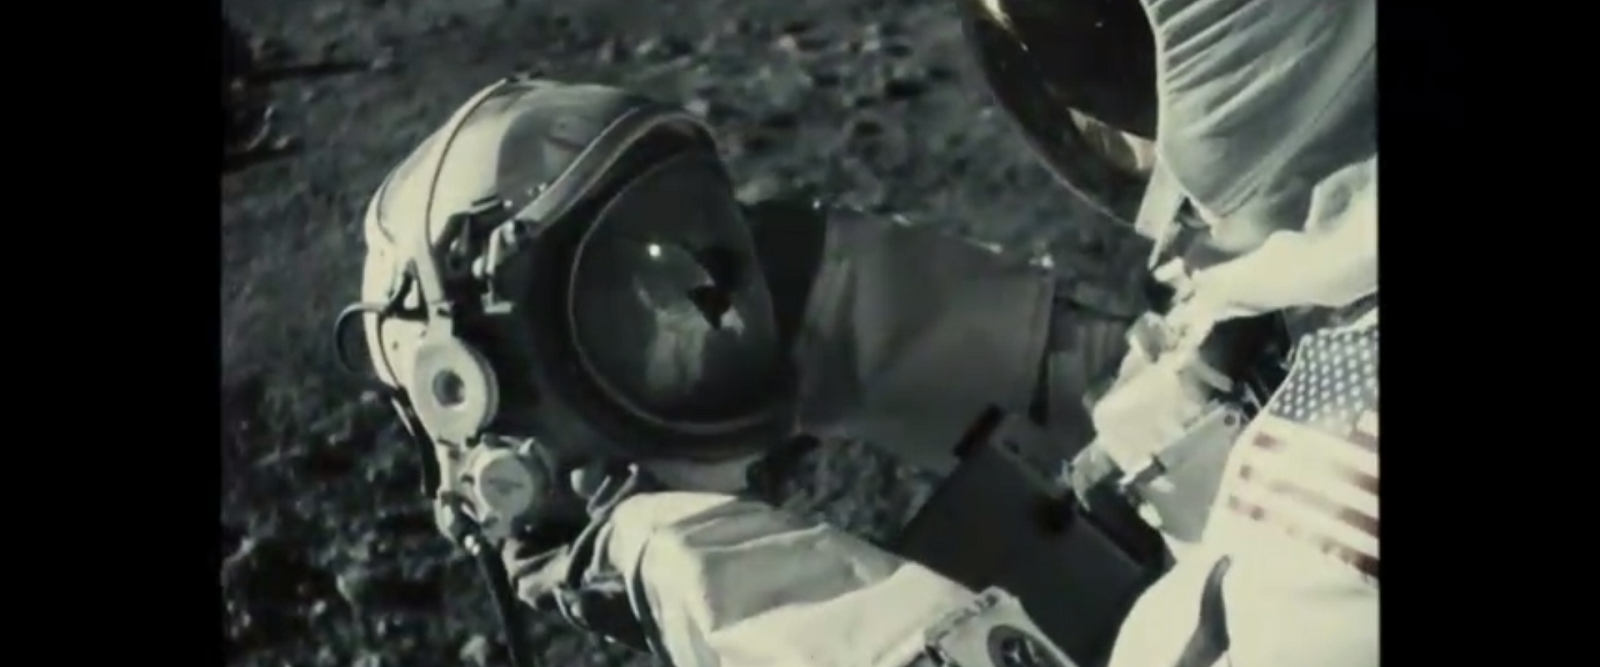 An astronaut on the moon holding a cracked helmet